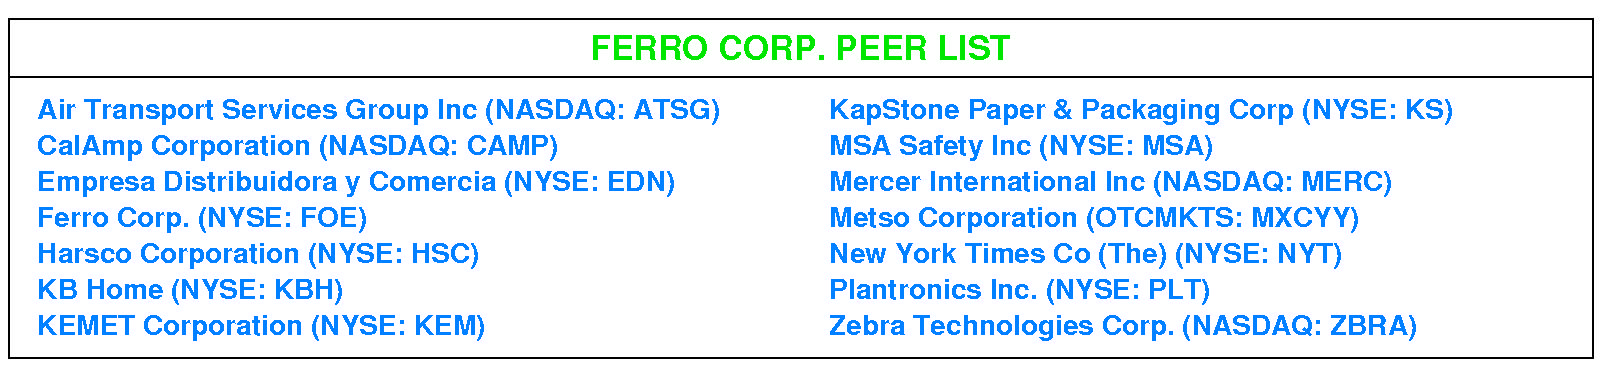 Rating Update: Stock Rating C-Neutral (5/22/19)-Ferro Corp